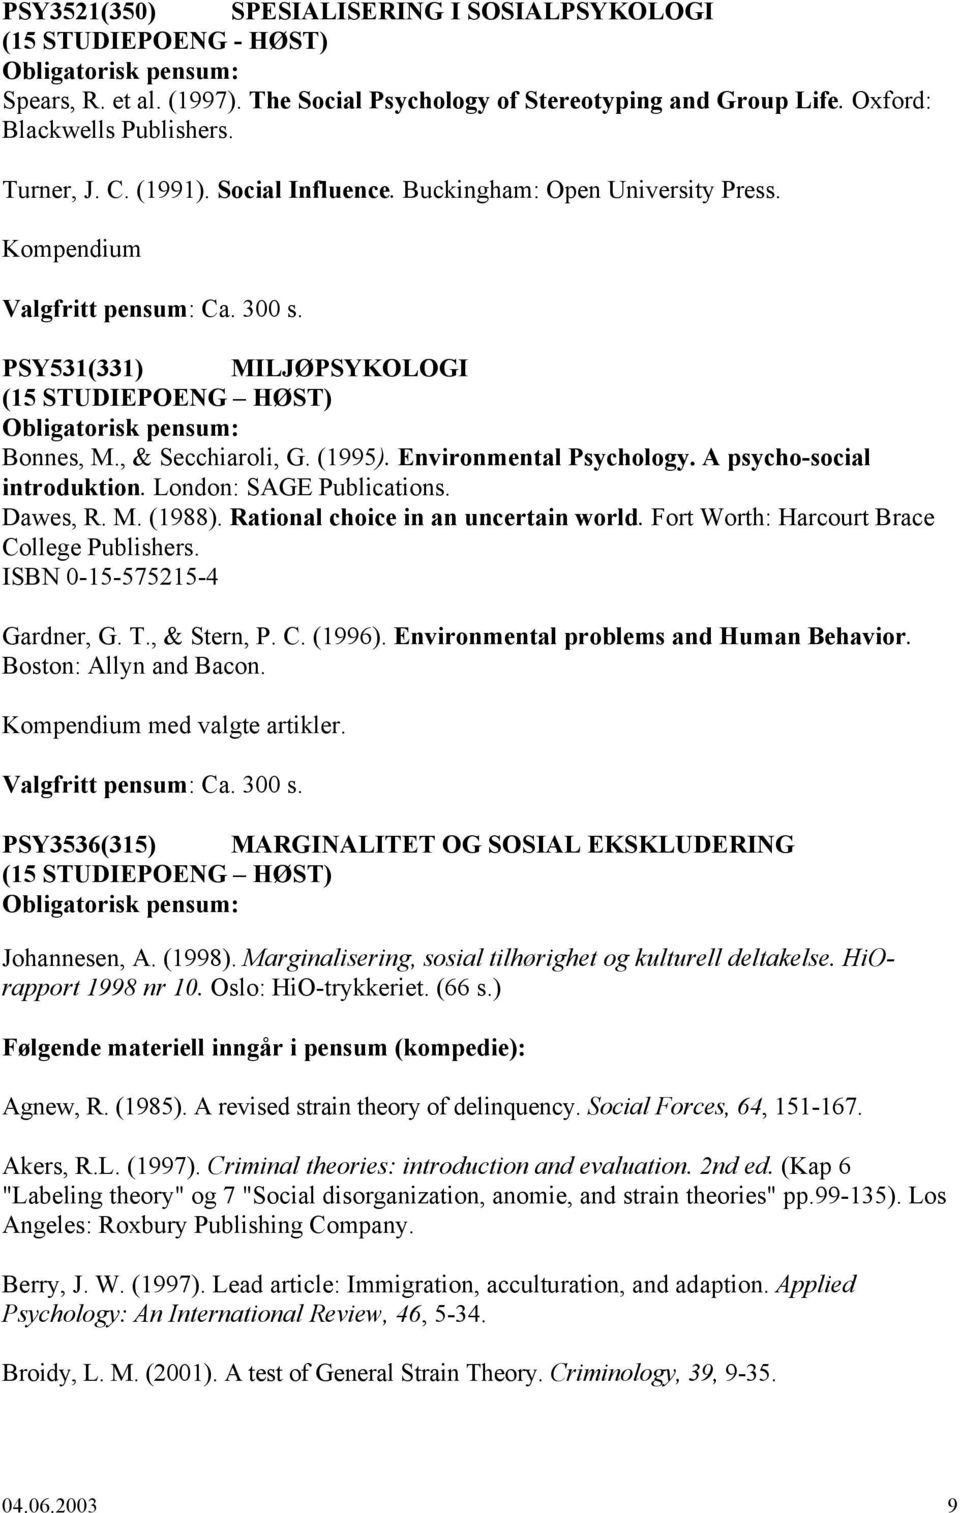 PSY531(331) MILJØPSYKOLOGI Obligatorisk pensum: Bonnes, M., & Secchiaroli, G. (1995). Environmental Psychology. A psycho-social introduktion. London: SAGE Publications. Dawes, R. M. (1988).